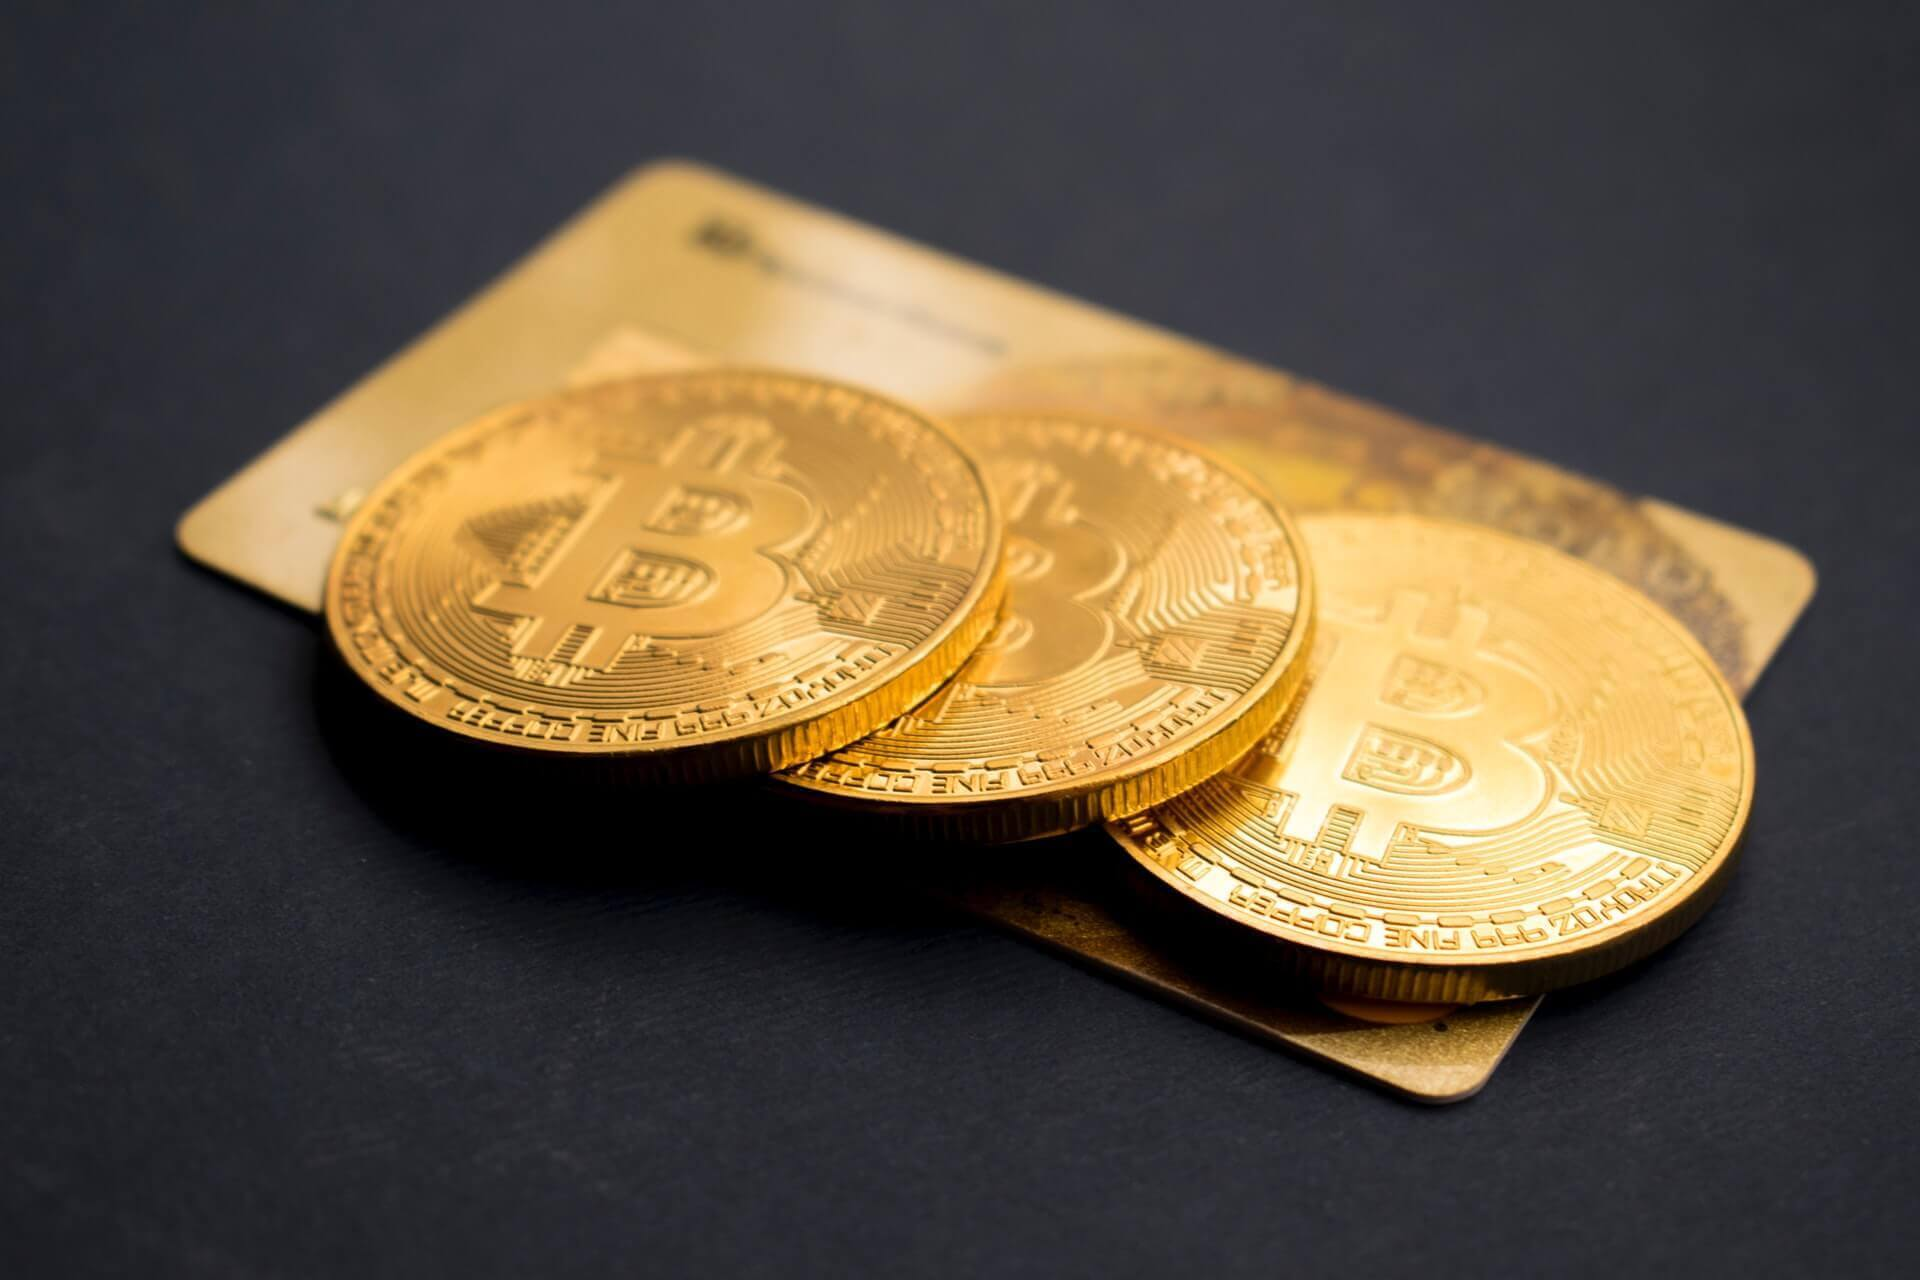 How To Buy Bitcoin With Your Credit Or Debit Card